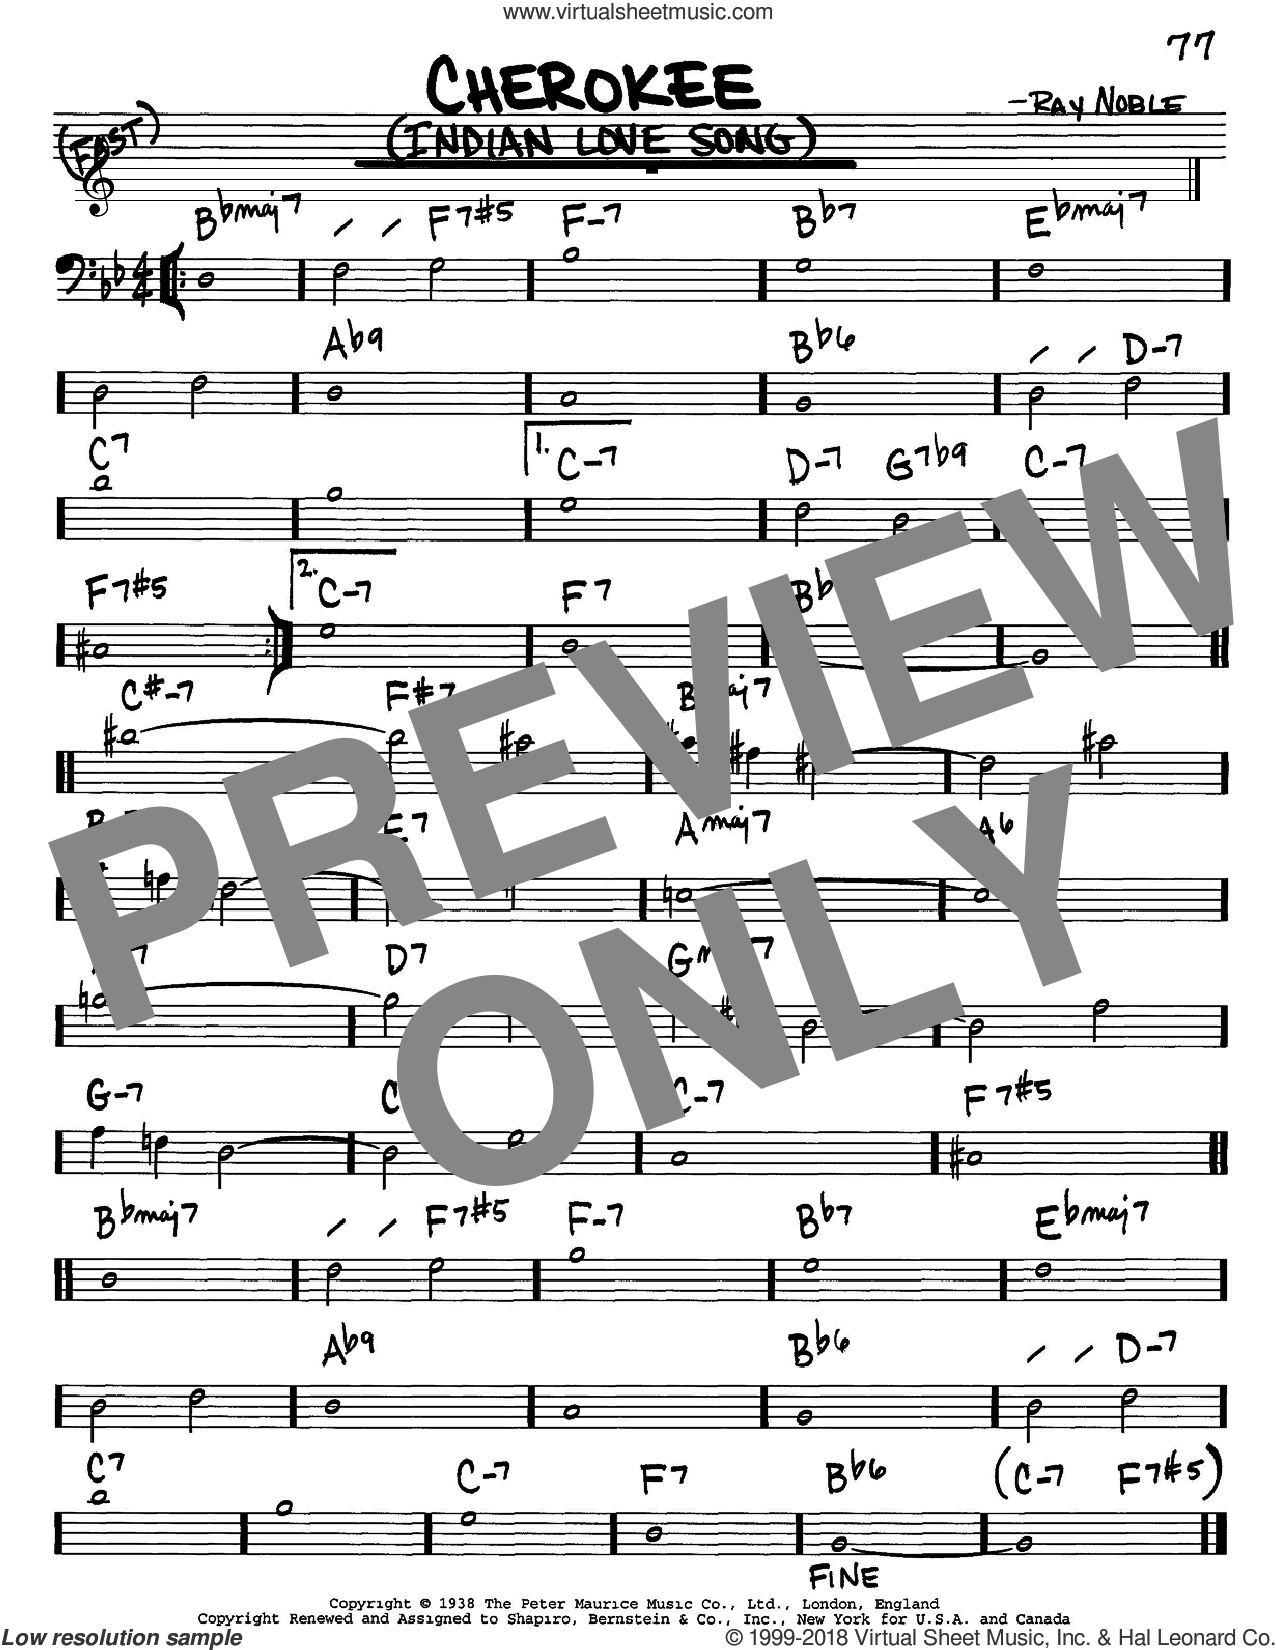 Cherokee (Indian Love Song) sheet music for voice and other instruments (Bass Clef ) by Ray Noble and Benny Goodman Sextet. Score Image Preview.